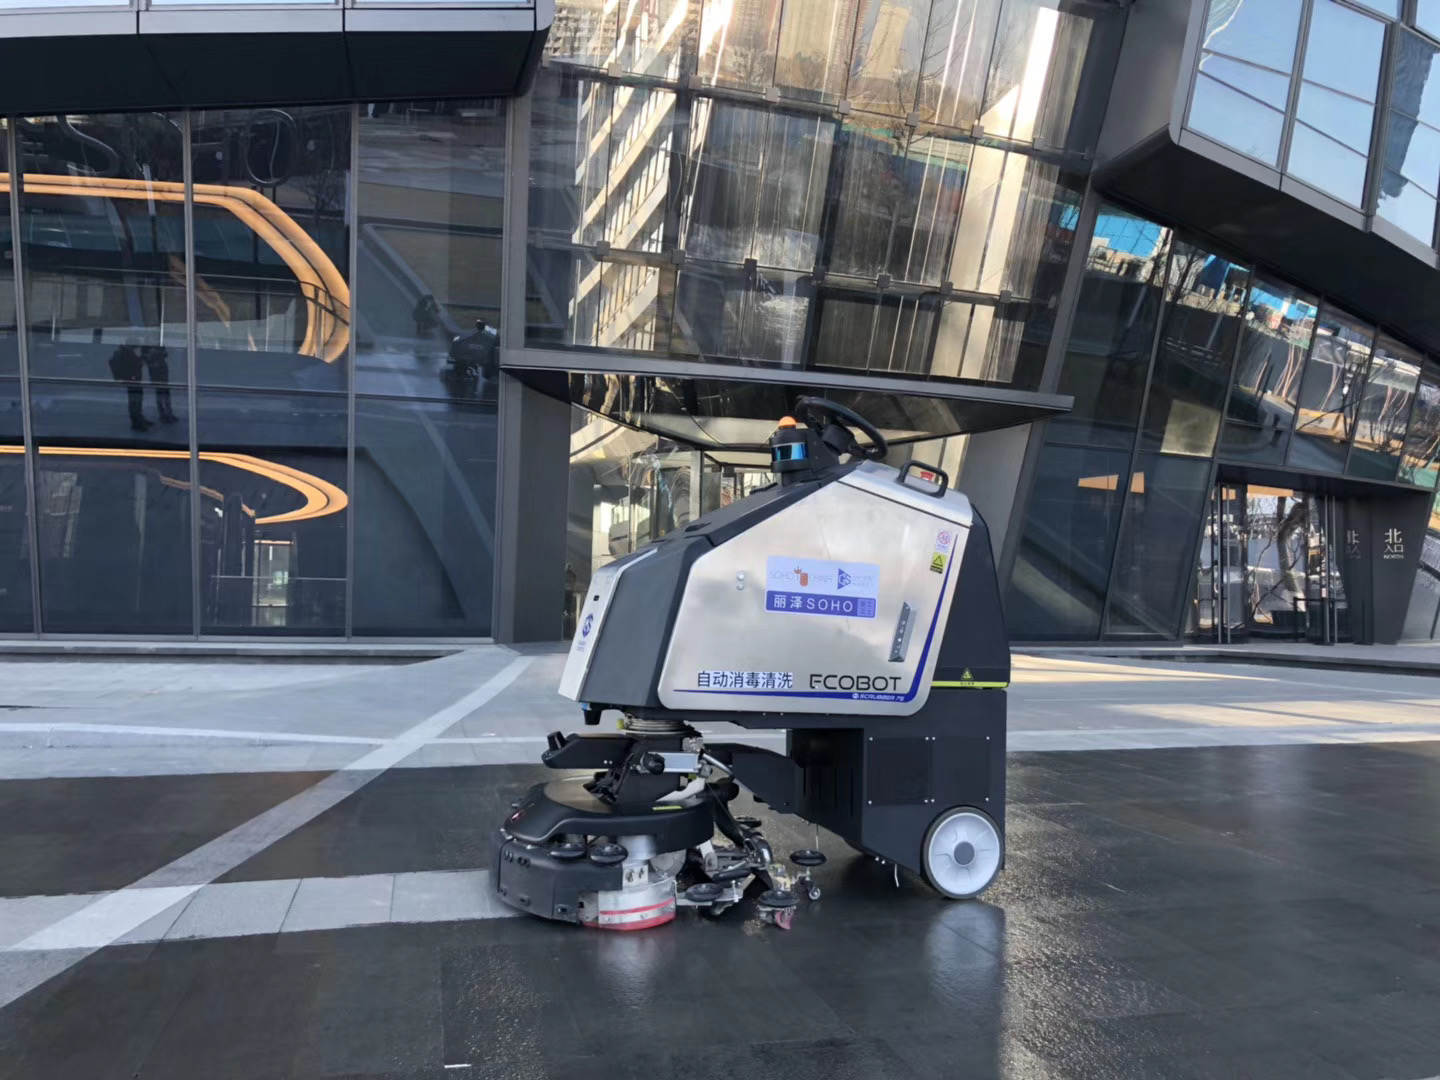 Access here alternative investment news about Chinese Cleaning Robot Developer Gaussian Robotics Raises $22M In Series B Round – China Money Network